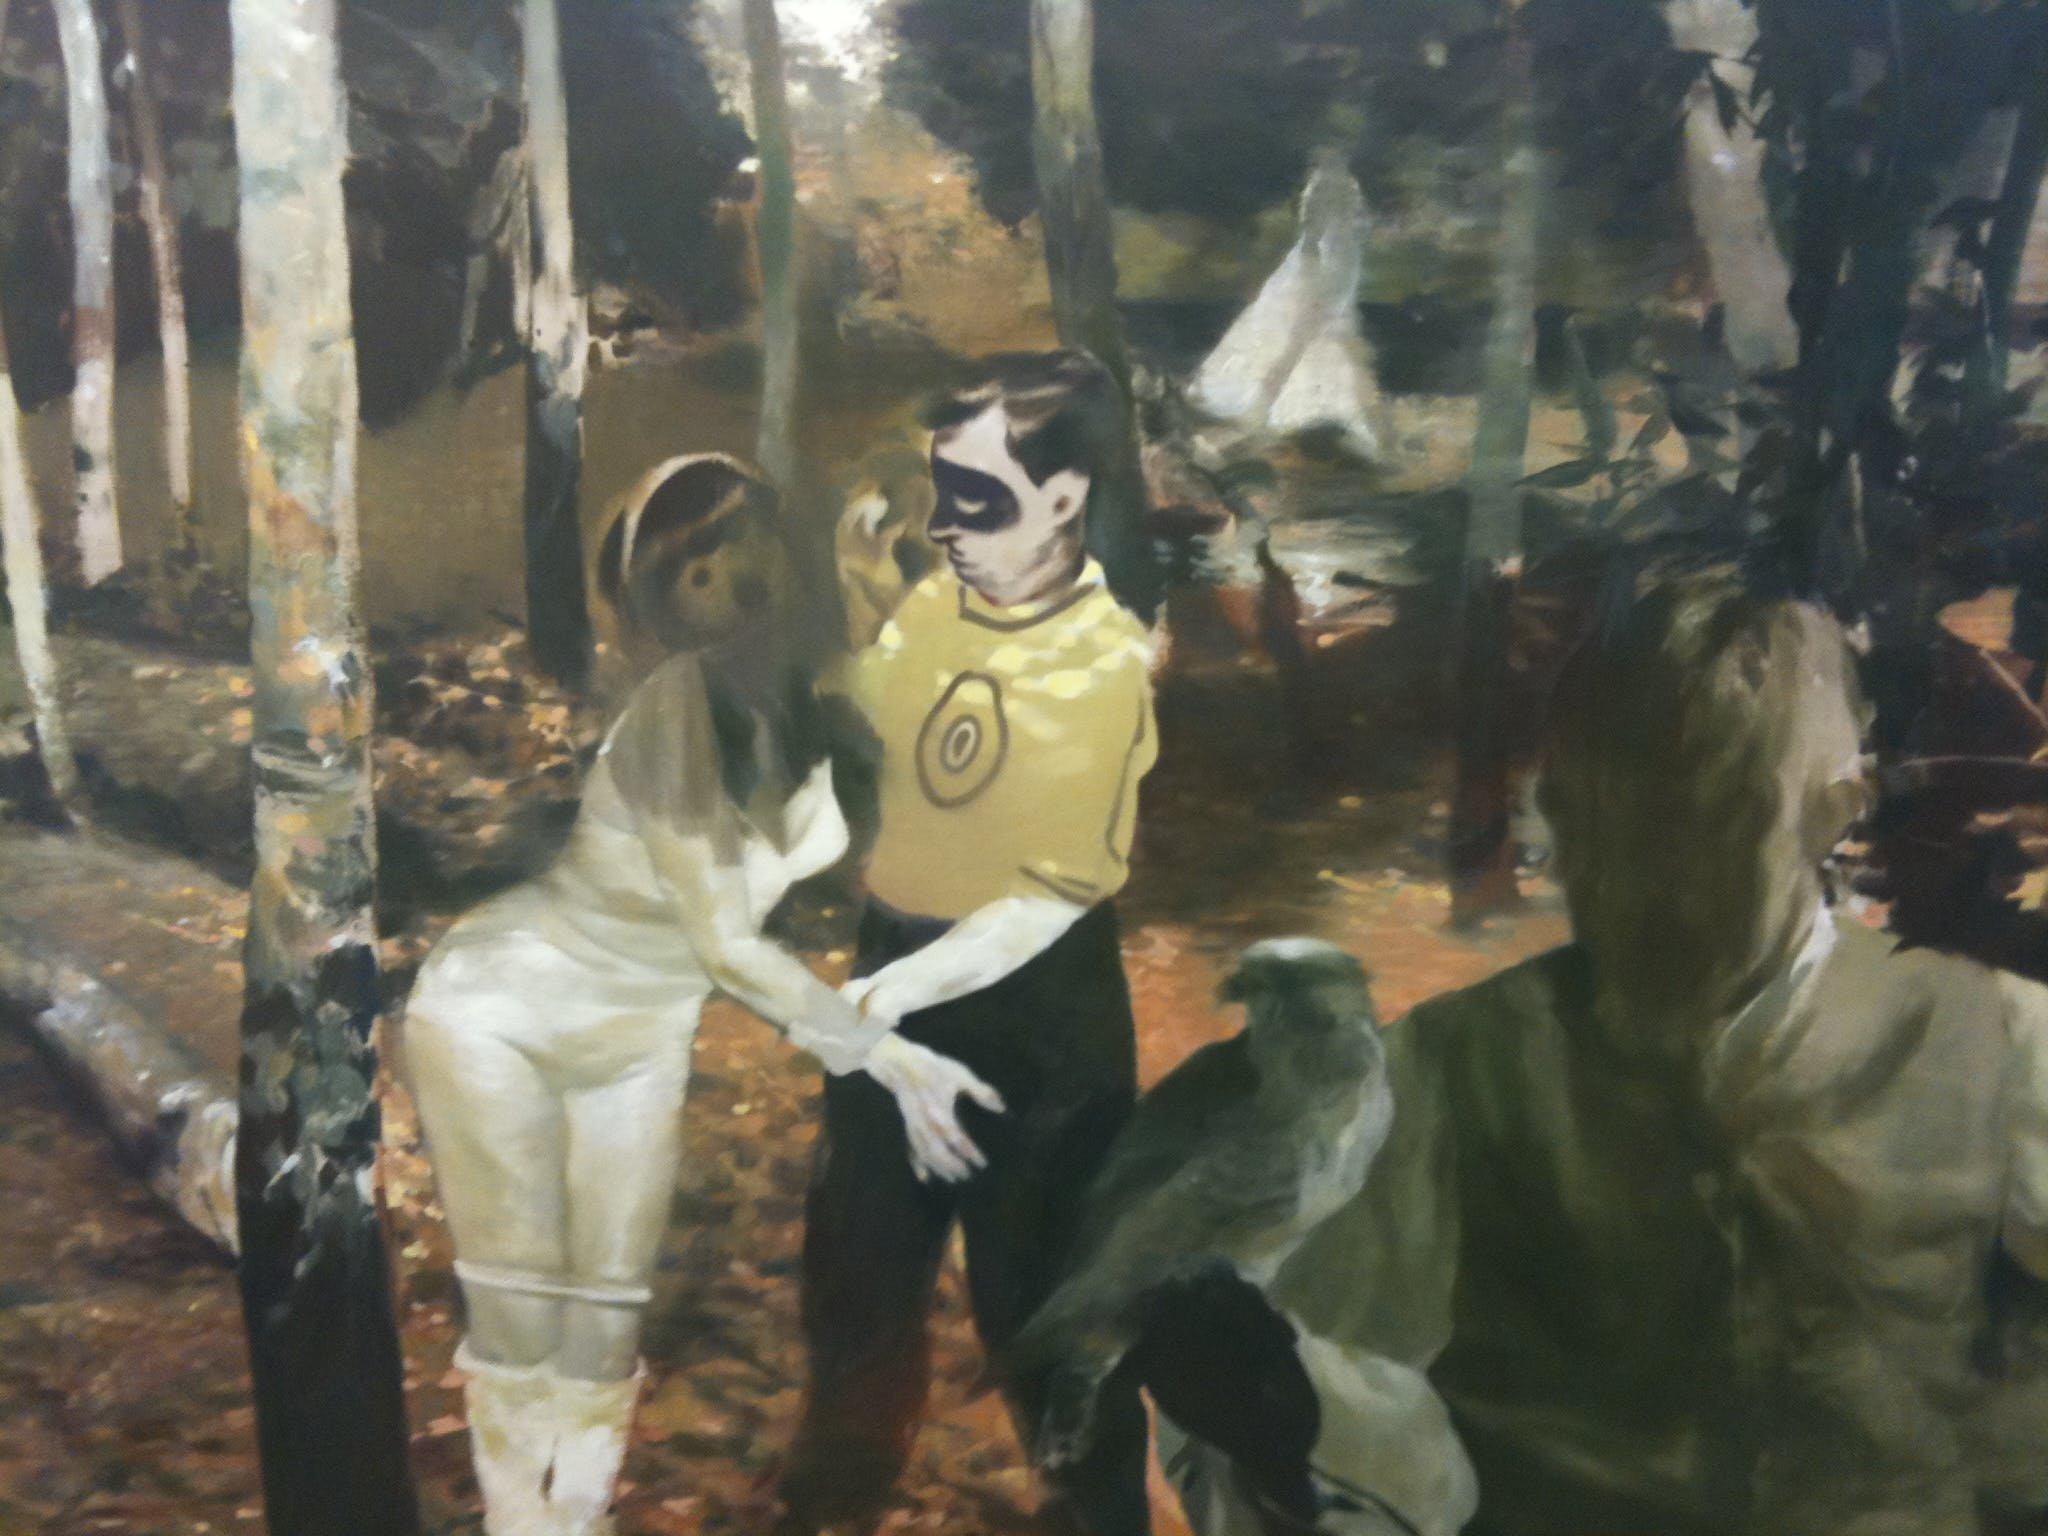 LARS ELLING: SOMETHING IS HAPPENING BUT YOU ARE FORBIDDEN TO LOOK AT IT